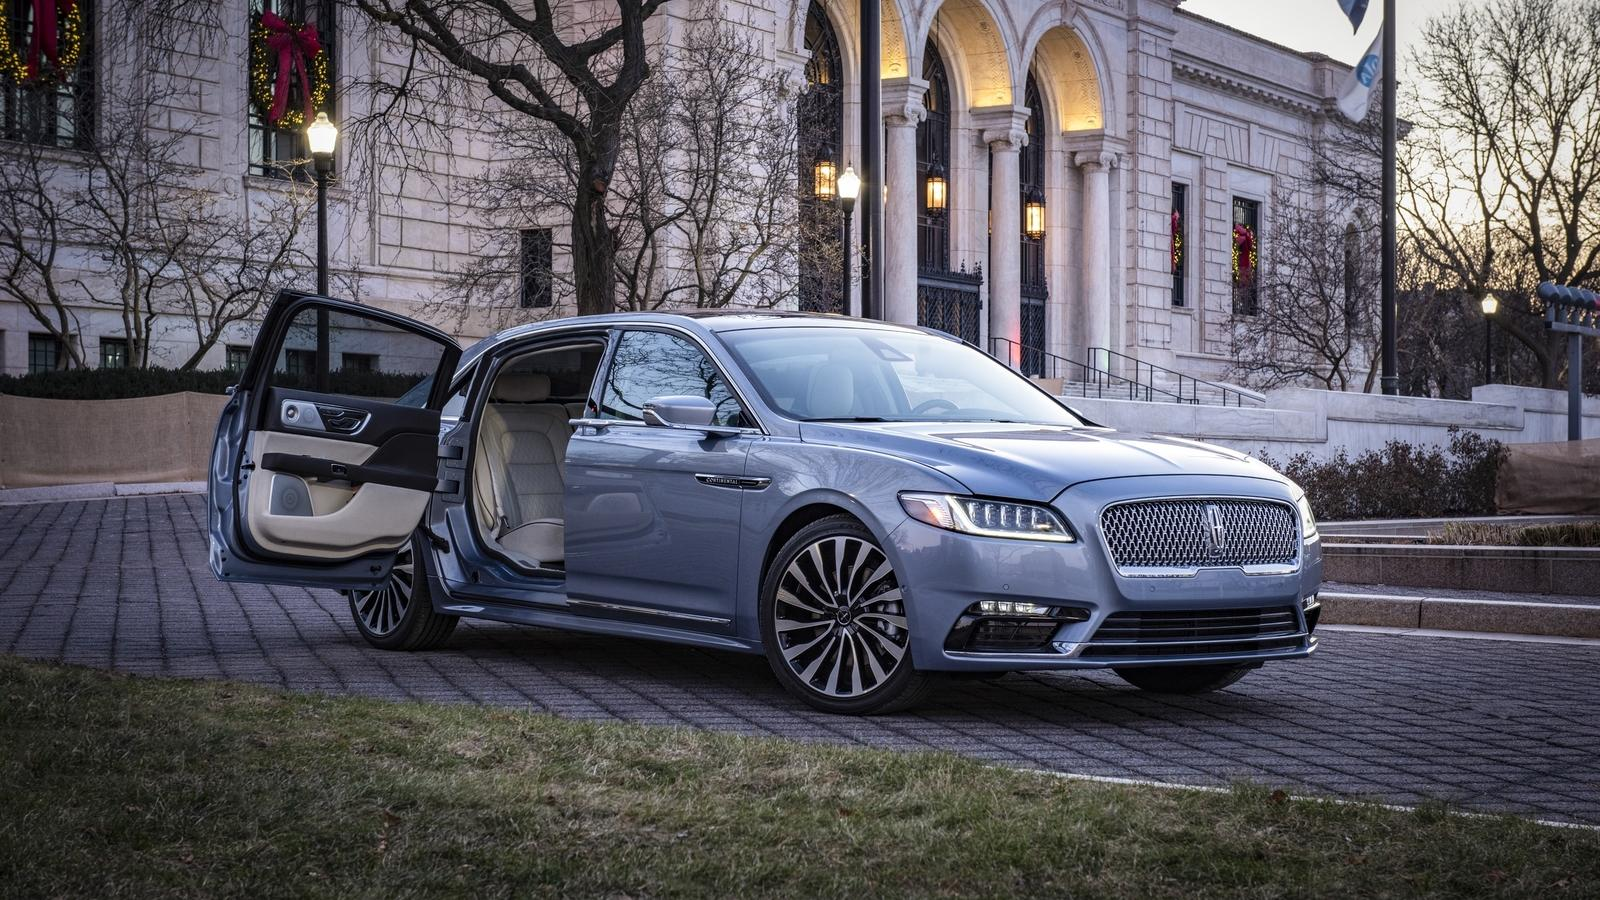 meet the 2019 lincoln continental coach door edition. Black Bedroom Furniture Sets. Home Design Ideas